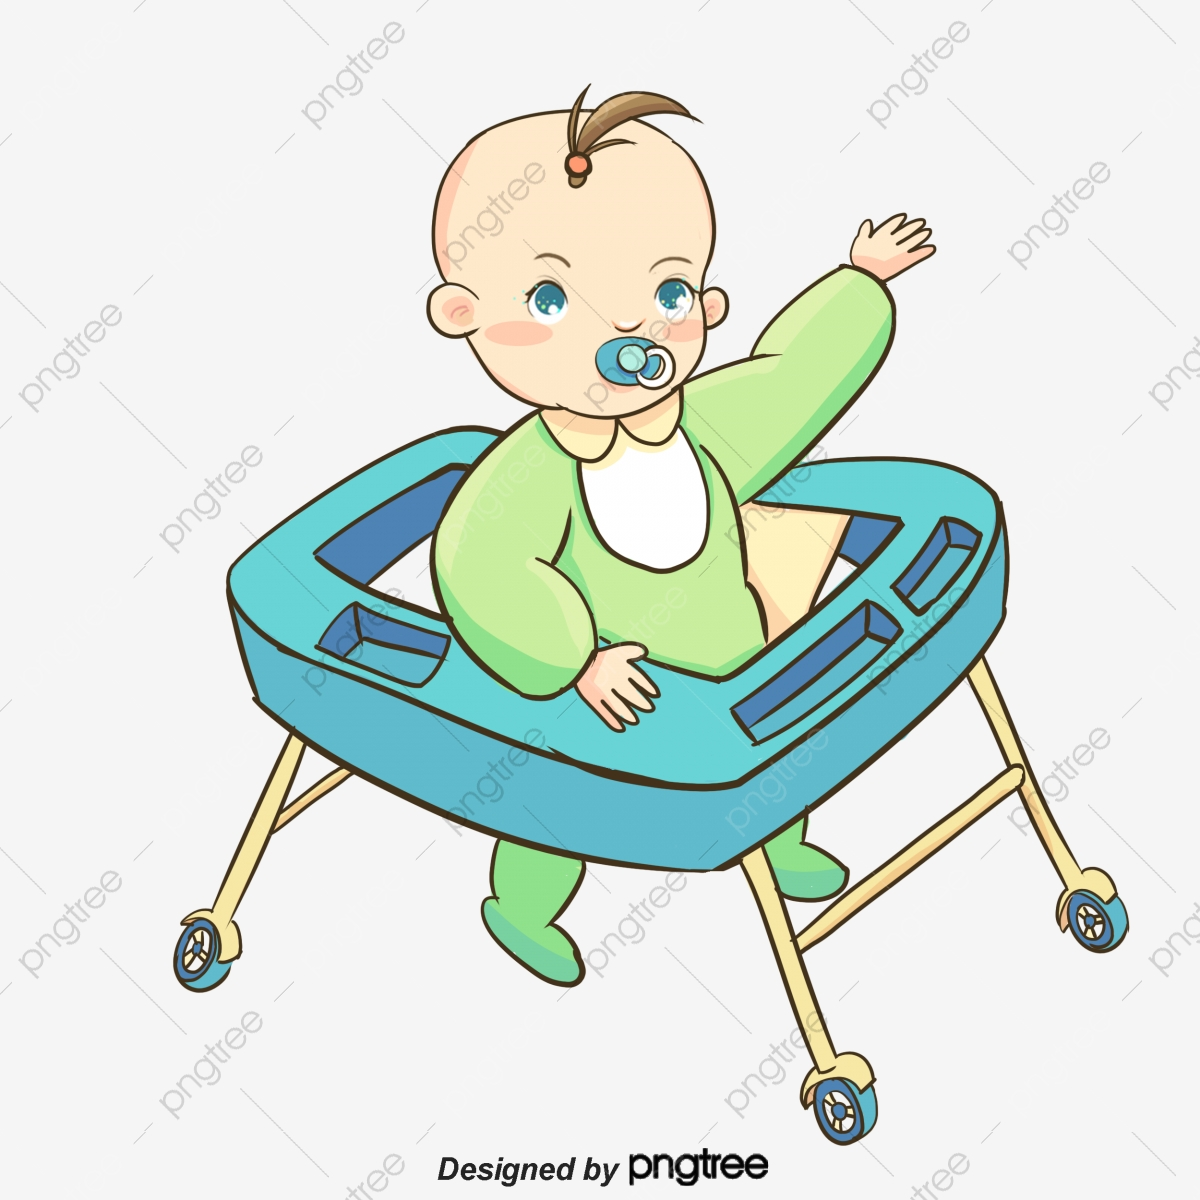 Blue Cartoon Baby Boy Cartoon Clipart Baby Clipart Boy Clipart Png Transparent Clipart Image And Psd File For Free Download